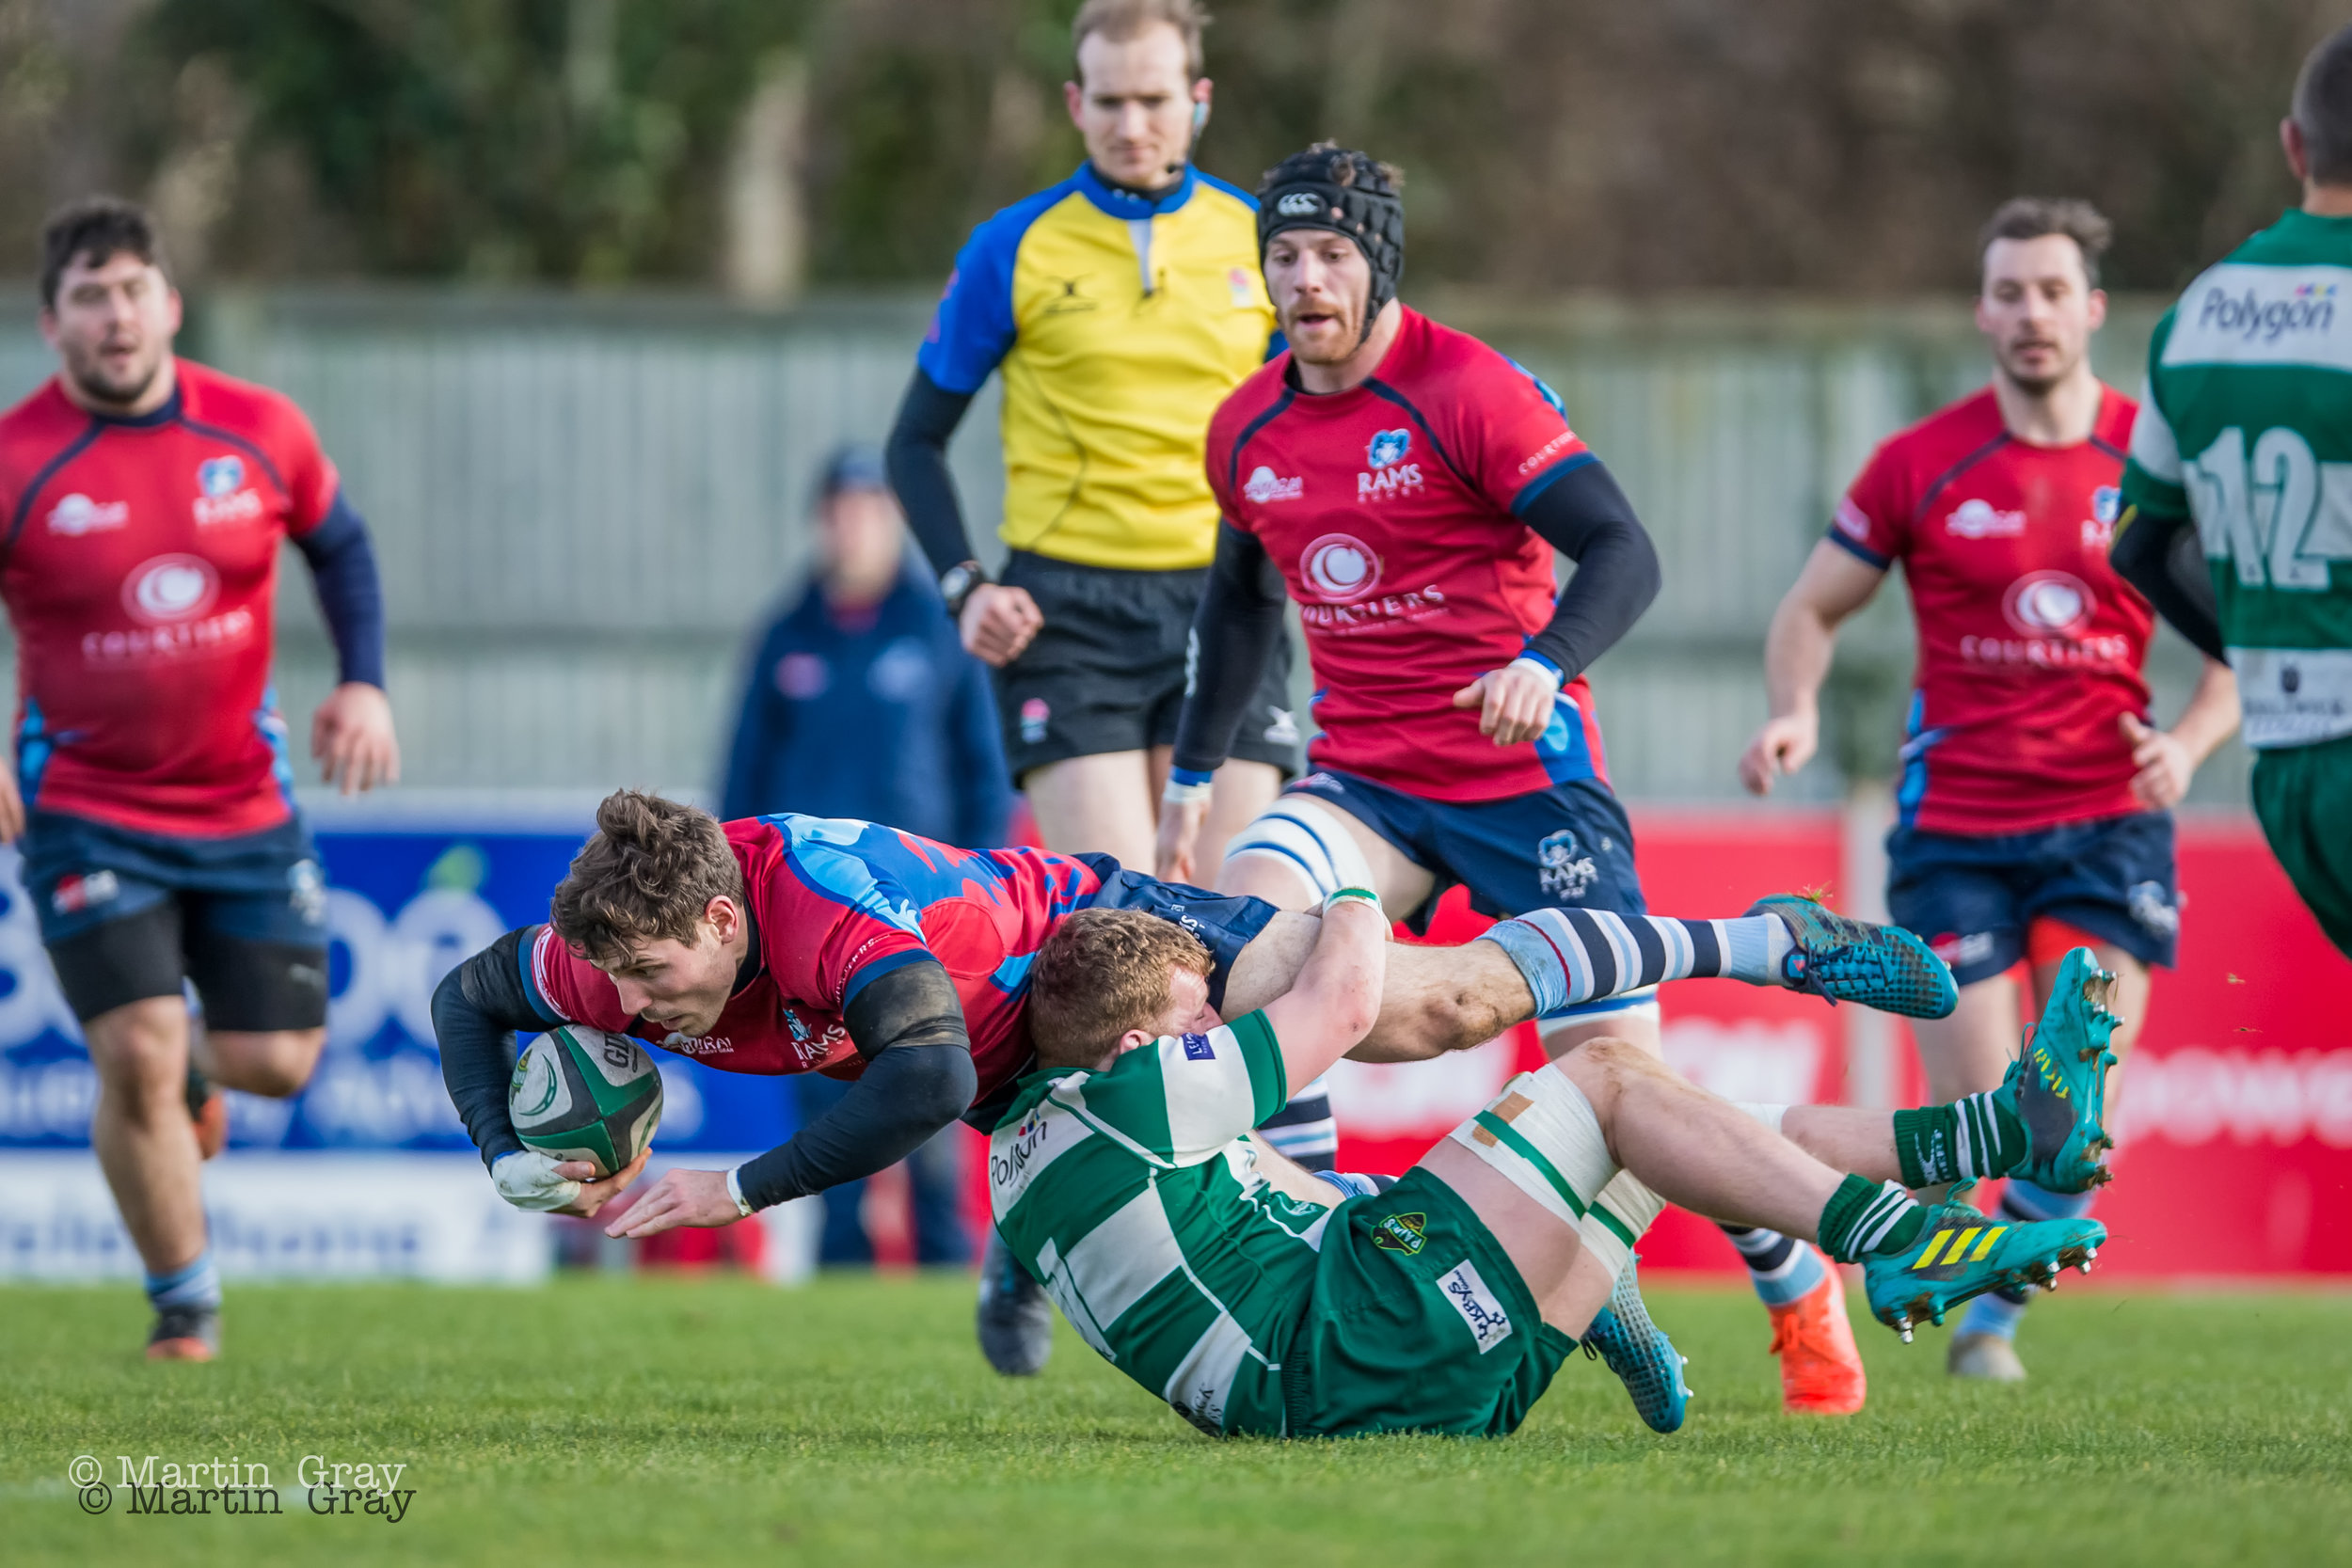 Guernsey Raiders v Rams RFC played at Footes Lane 2nd Feb 2019… Rams win 8-59